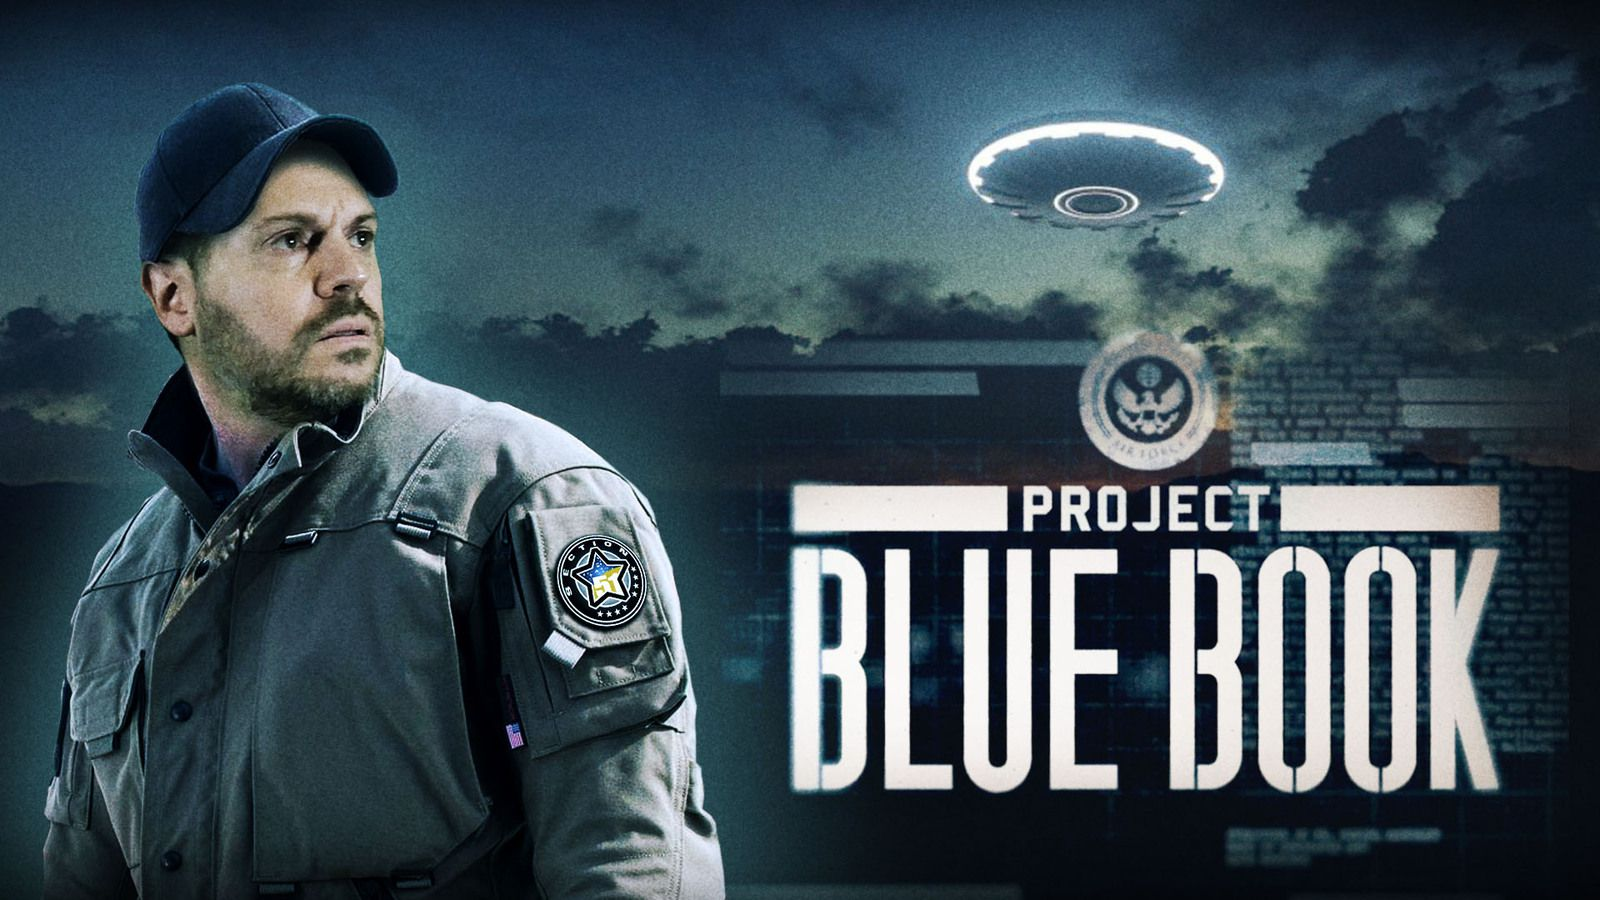 🔴 LIVE : Project Blue Book : The Top Secret UFO Files that Revealed a Government Cover-Up